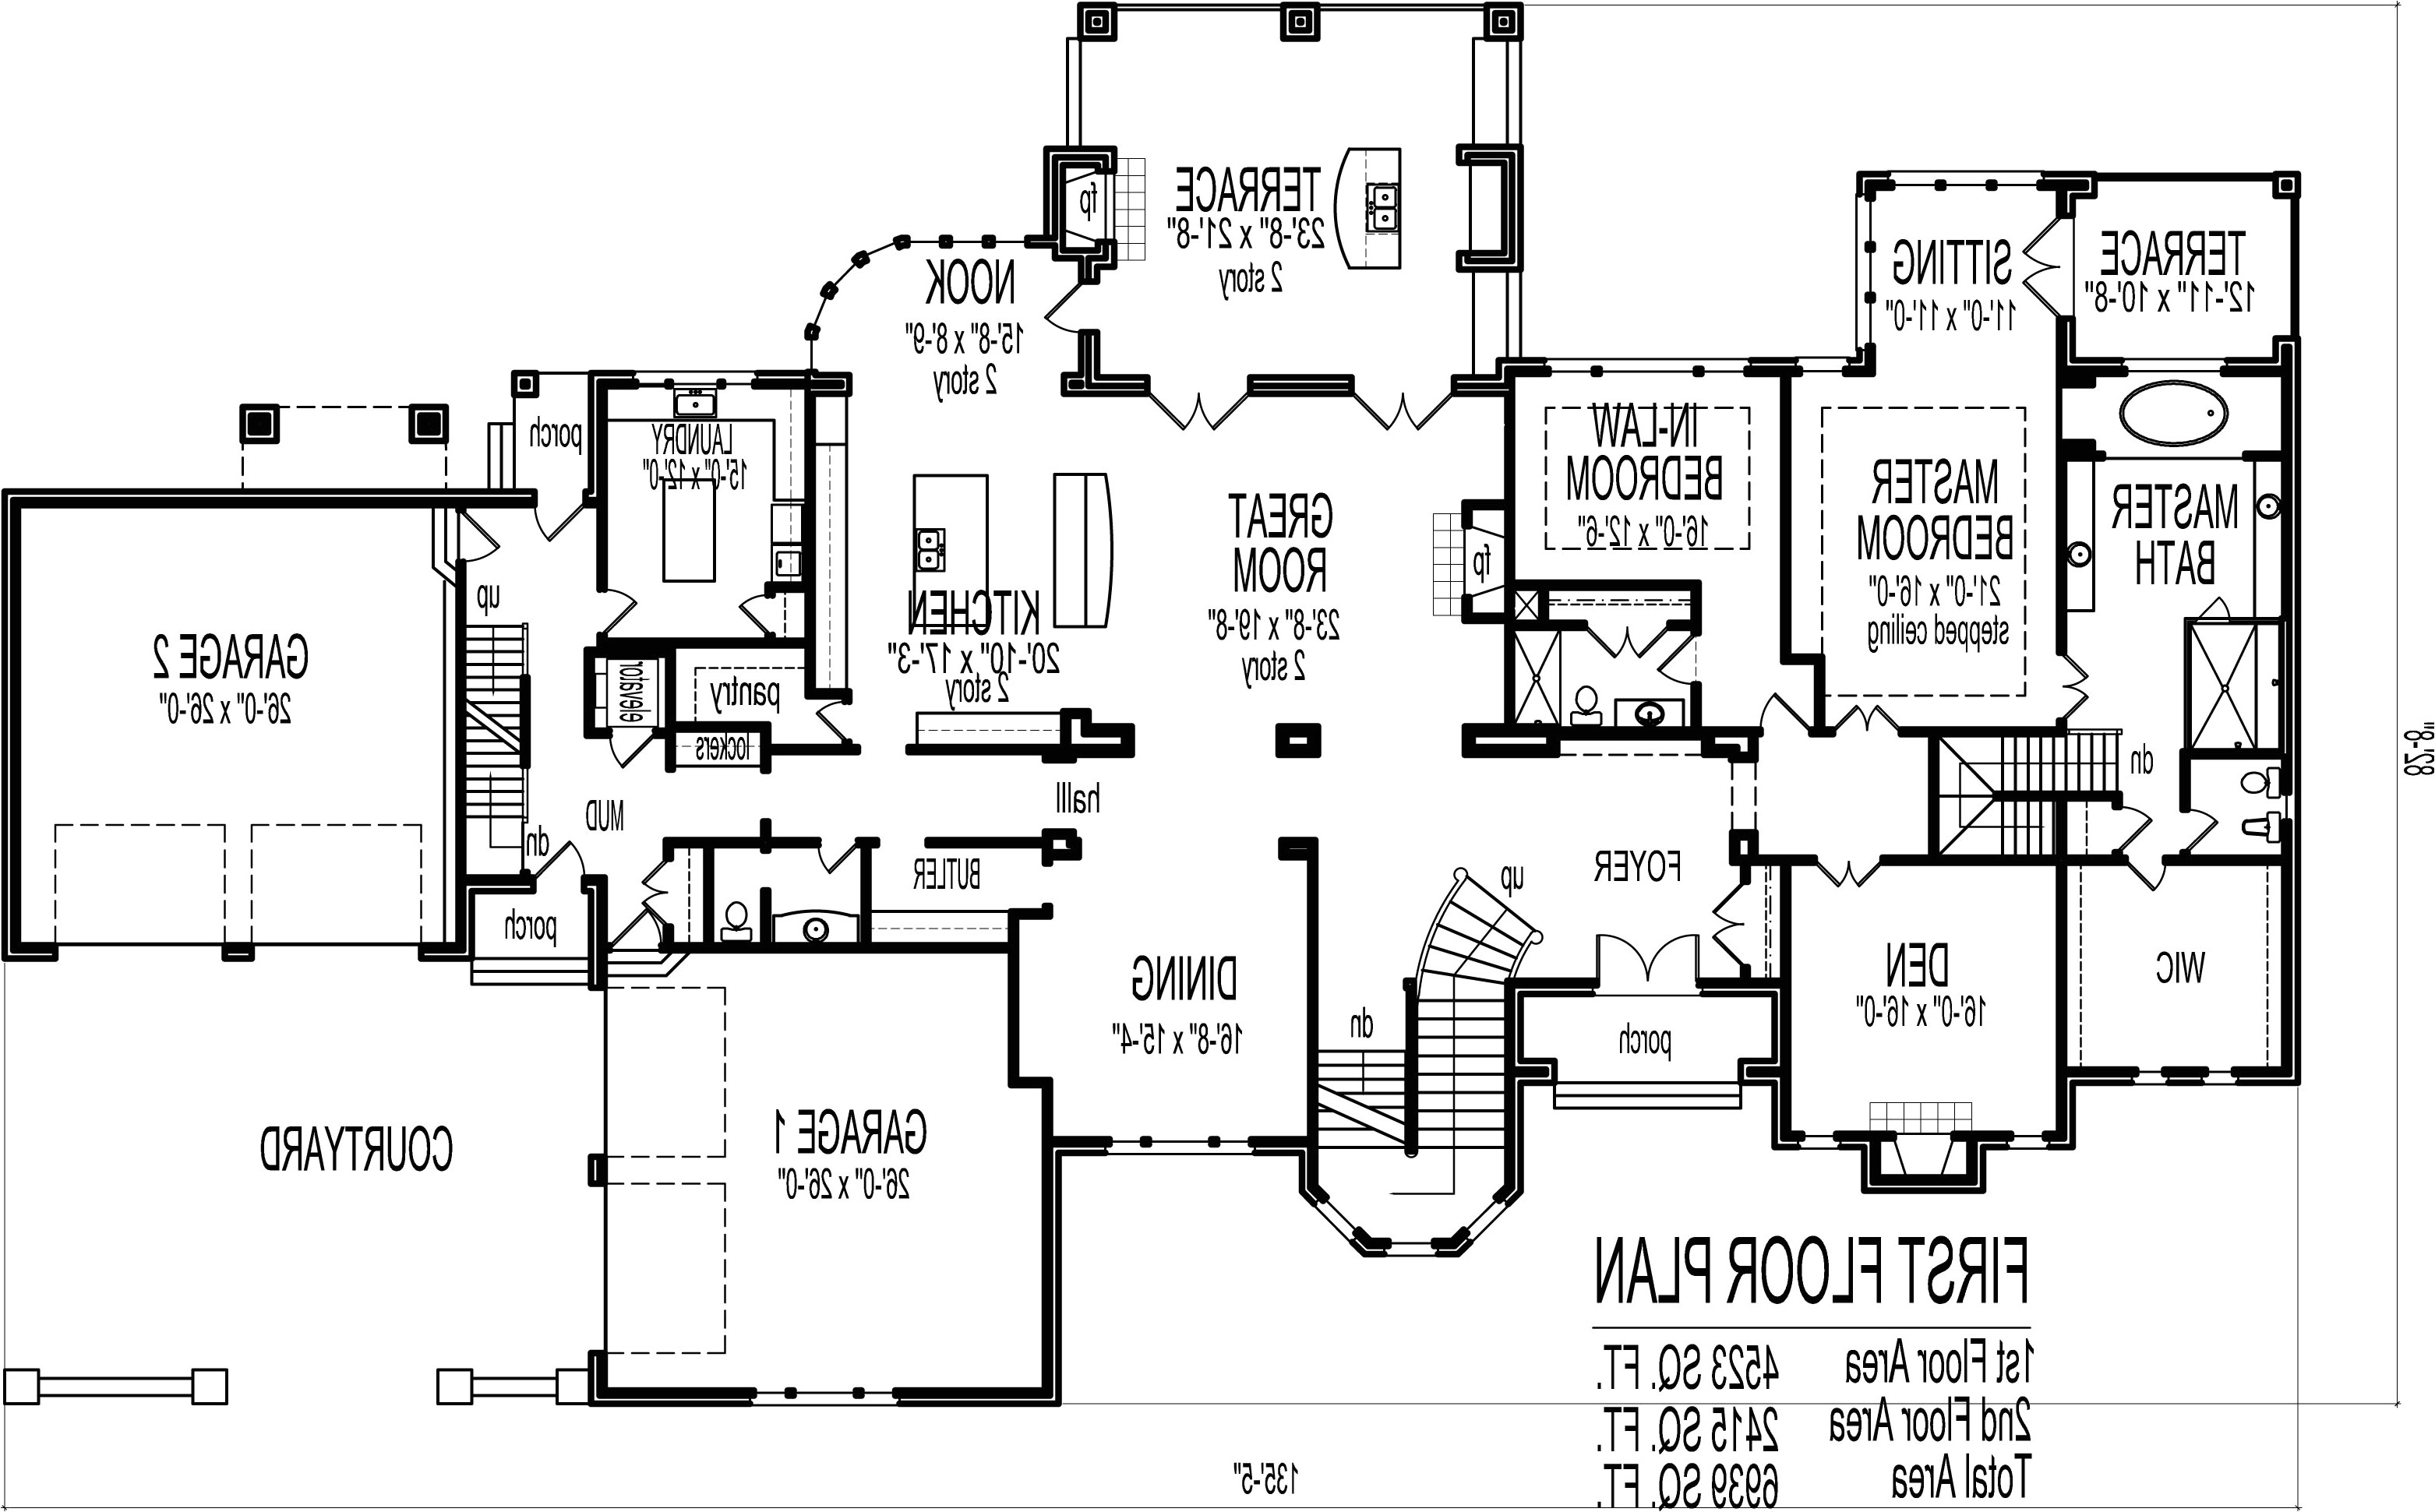 5000 to 10000 square foot house plans